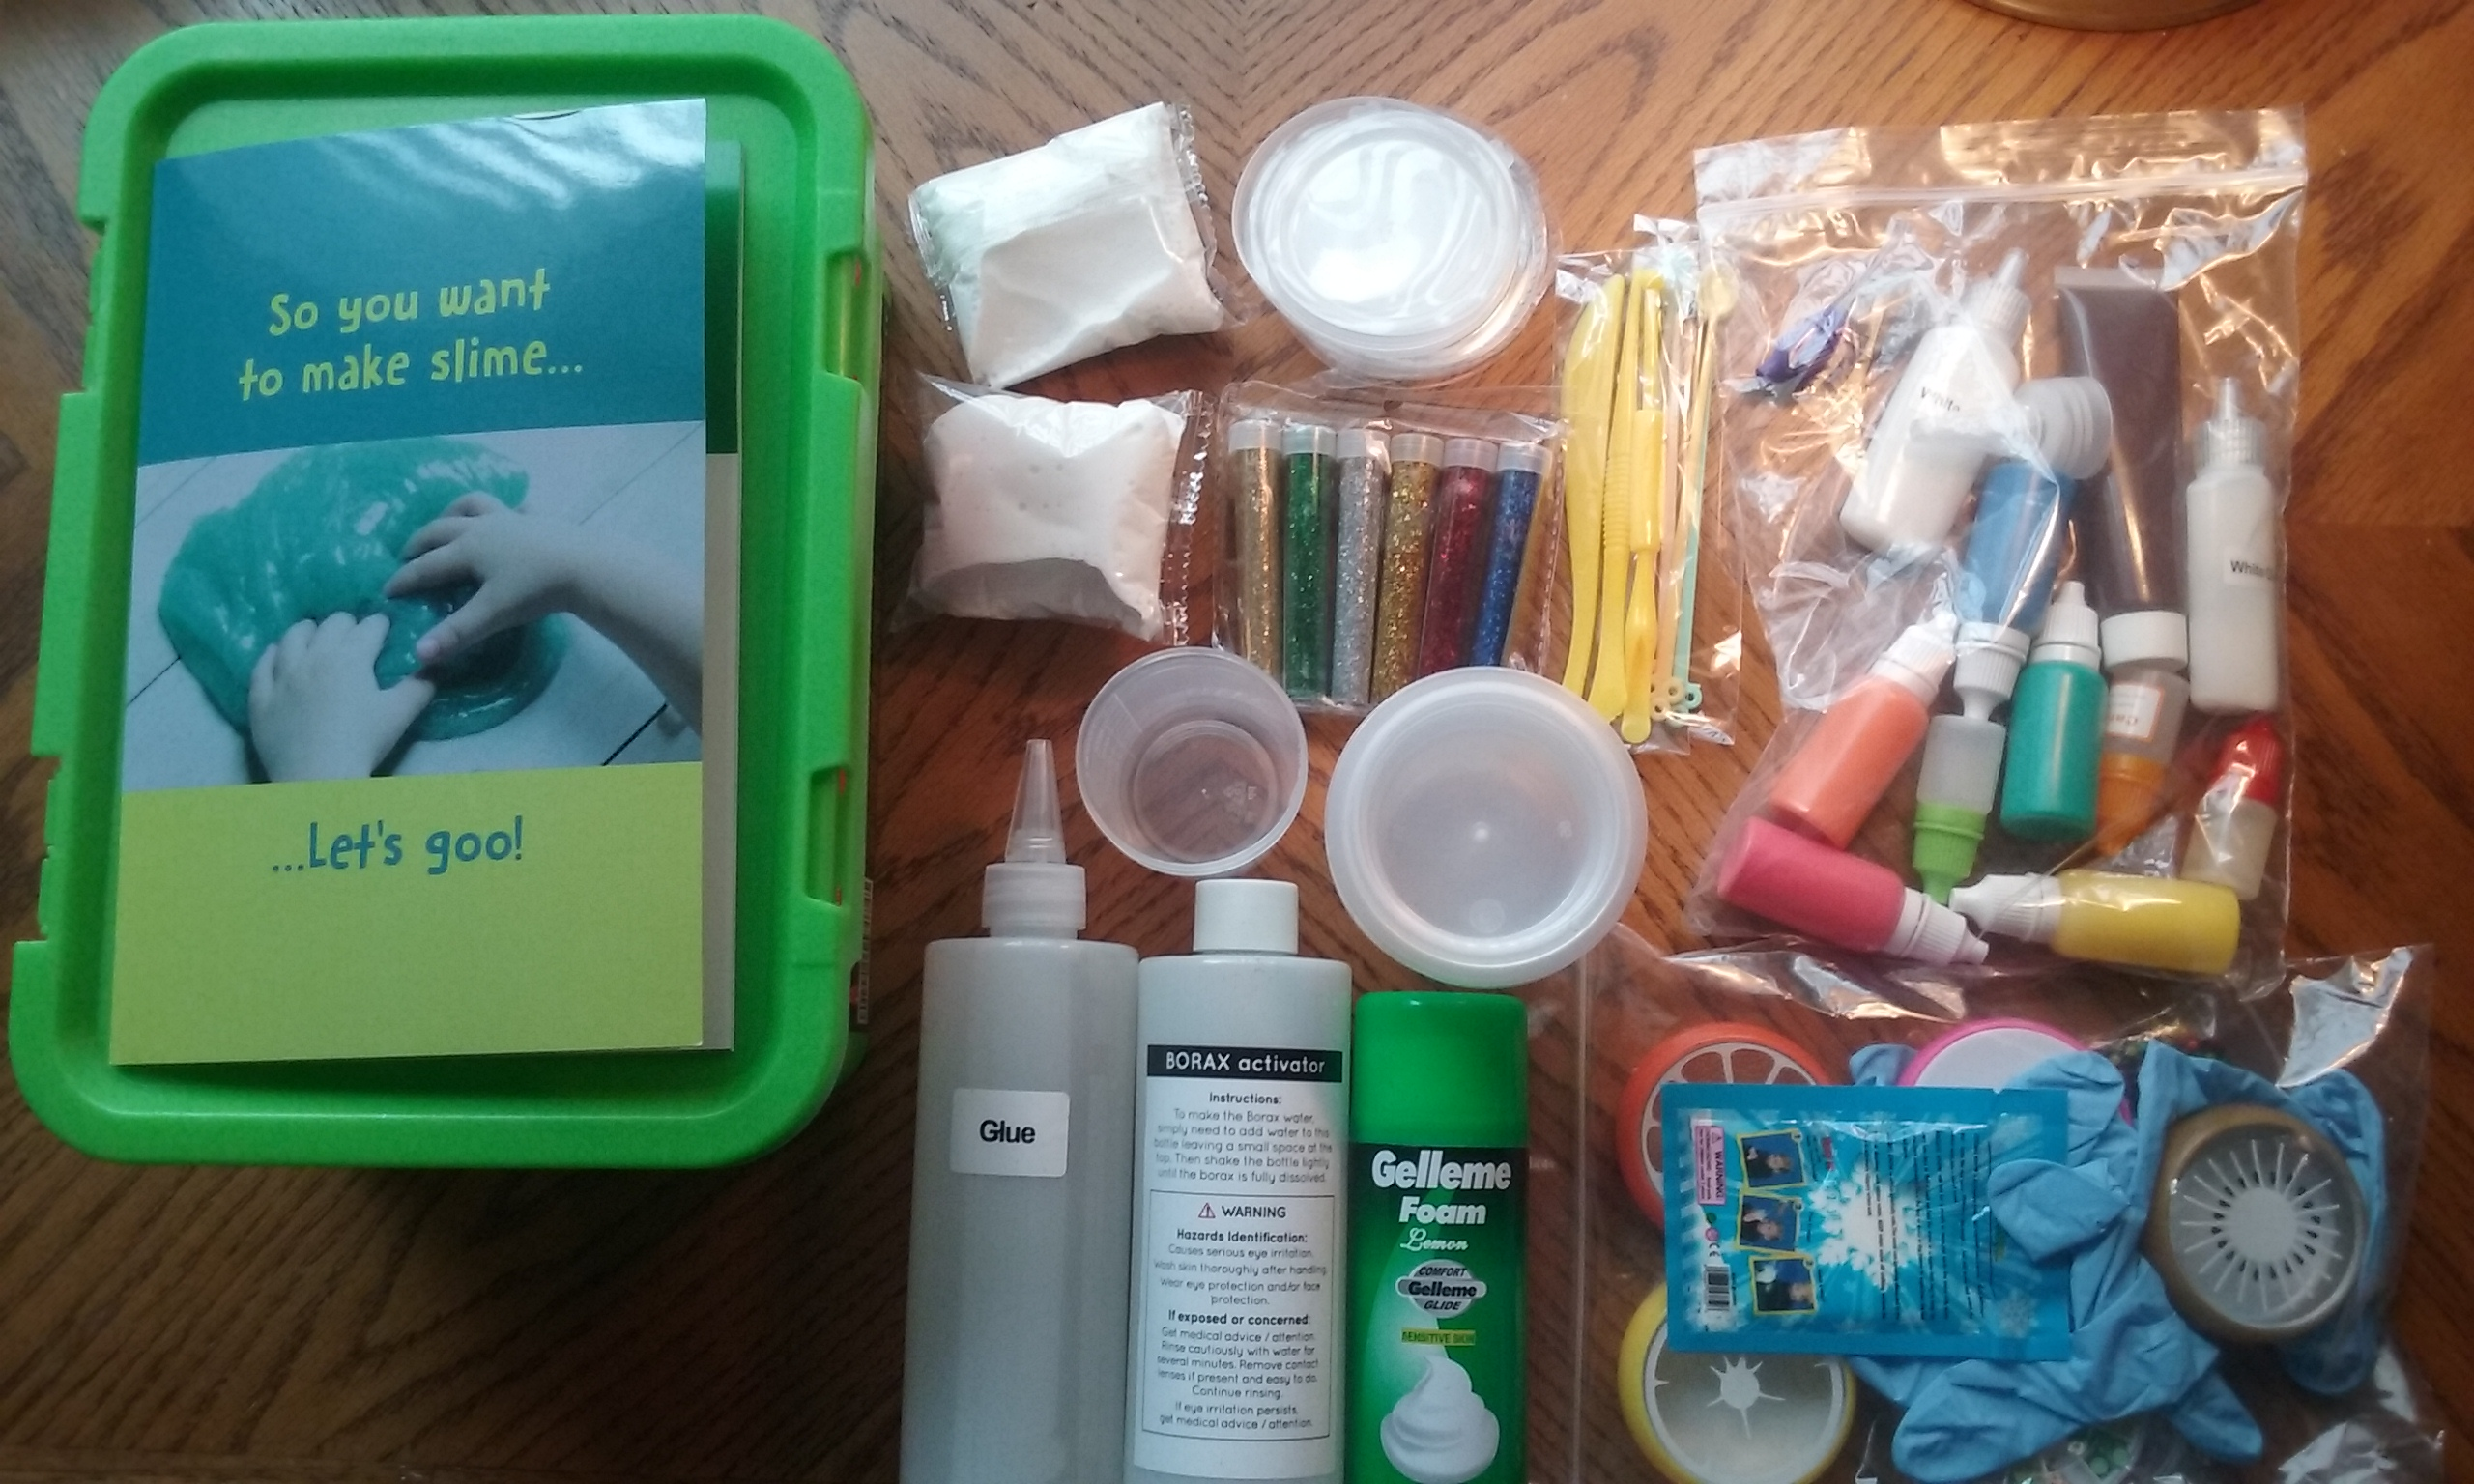 nickelodeon slime kit mixing instructions with slime activator